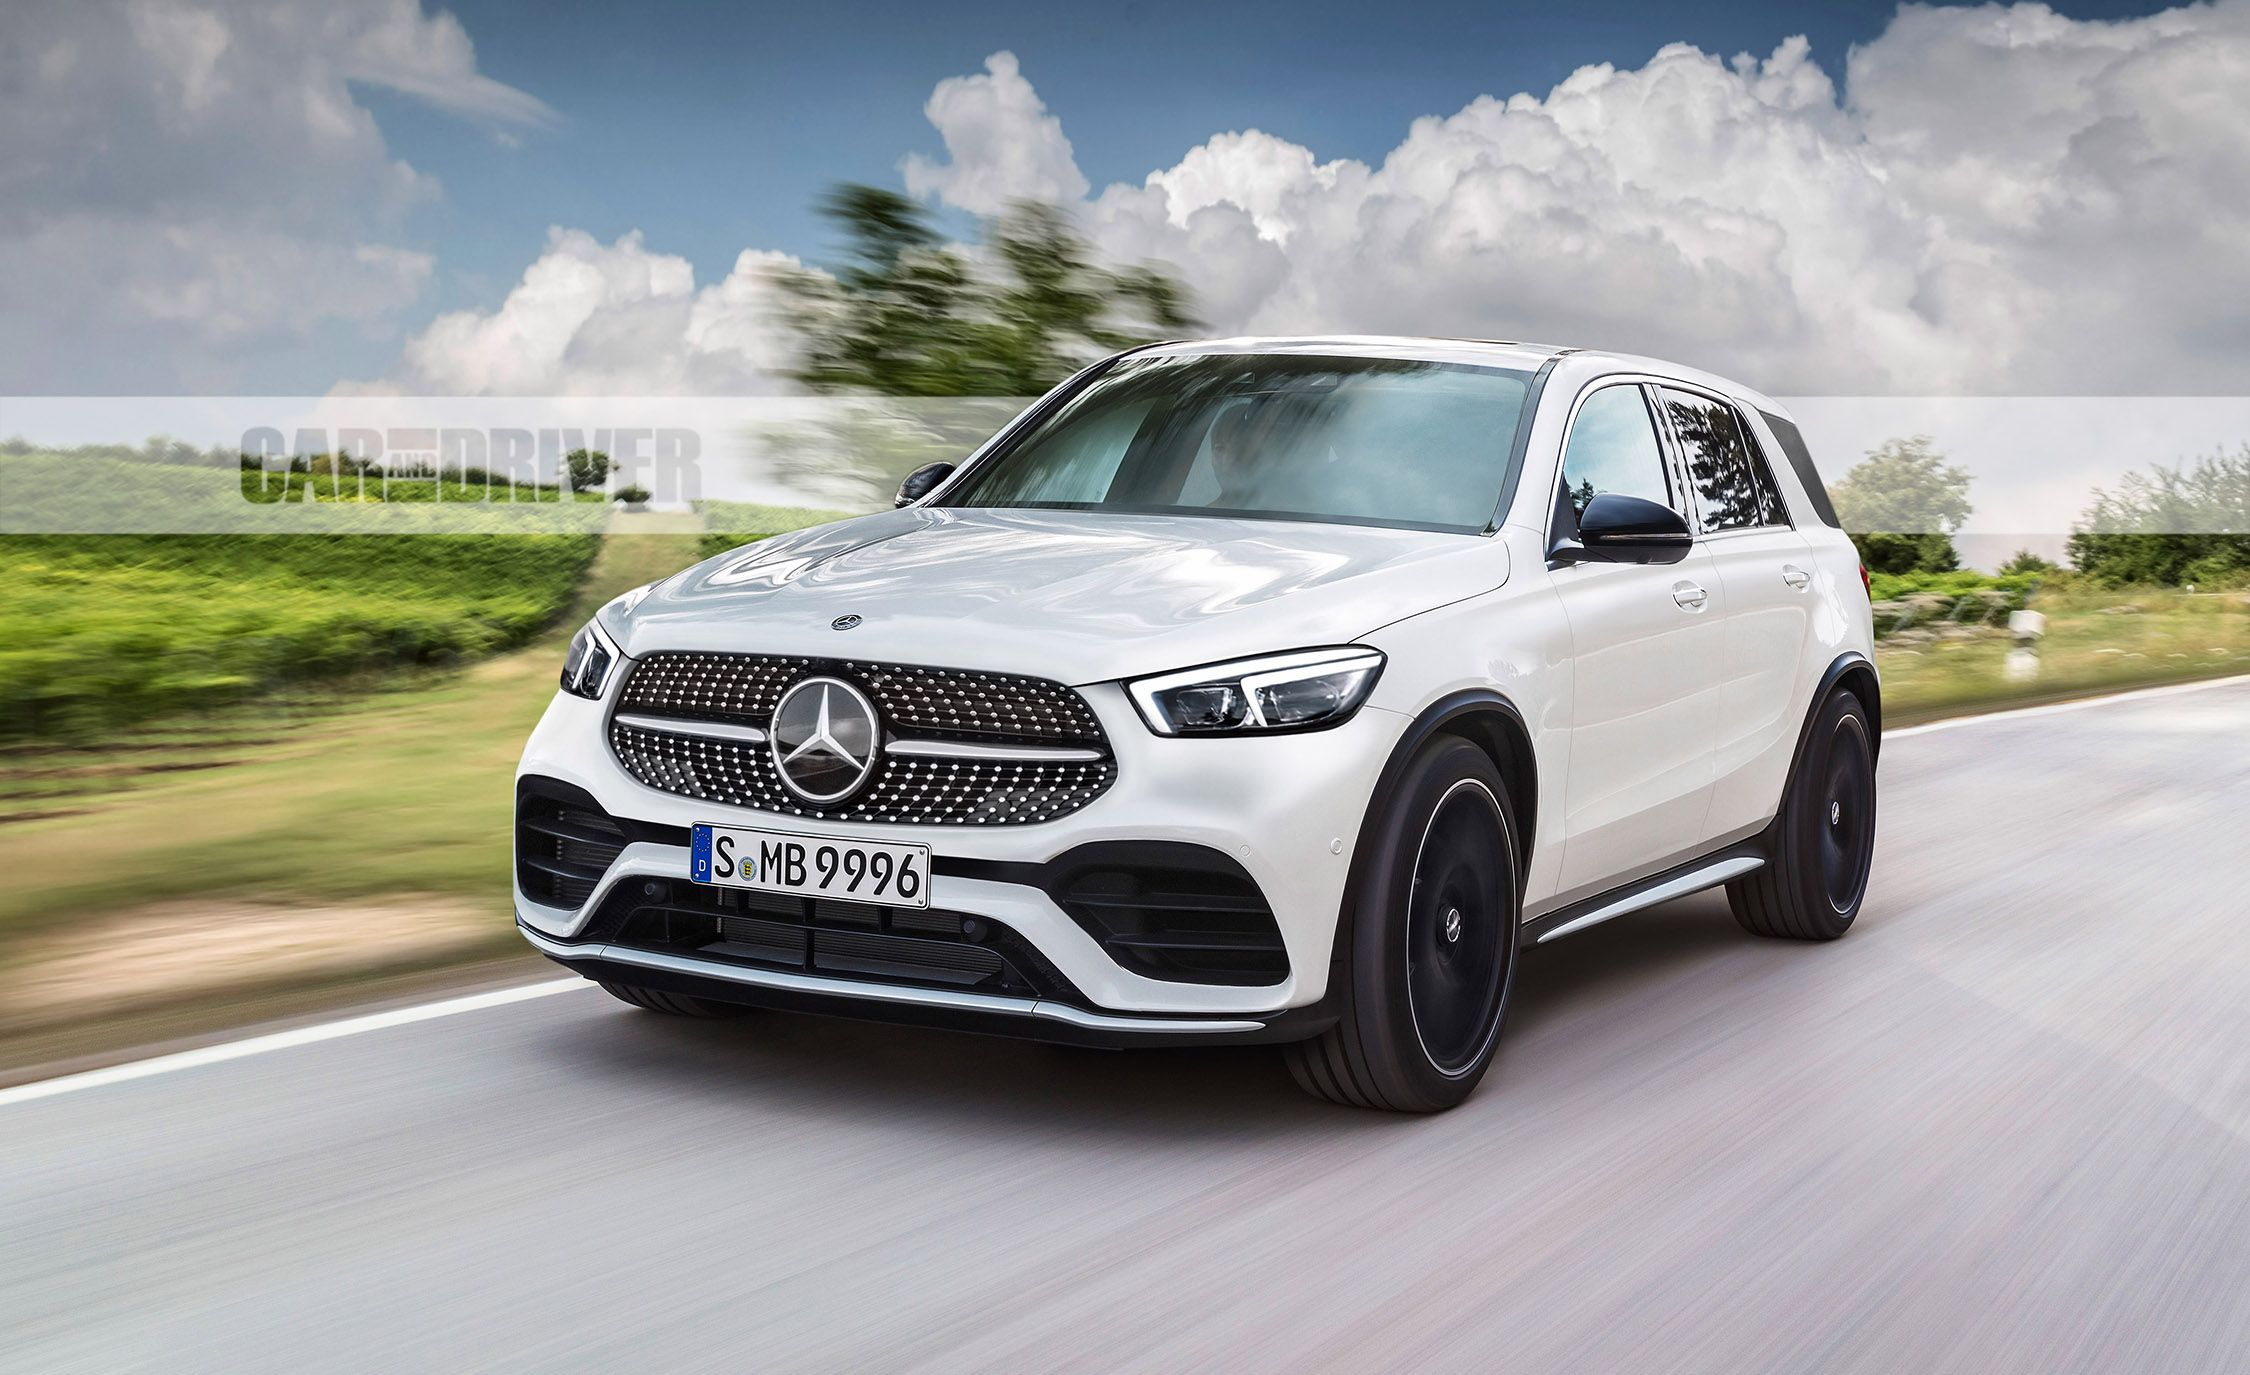 2019 Mercedes Gle Release Date >> 2019 Mercedes-Benz GLE-class: Here's What We Know| News | Car and Driver